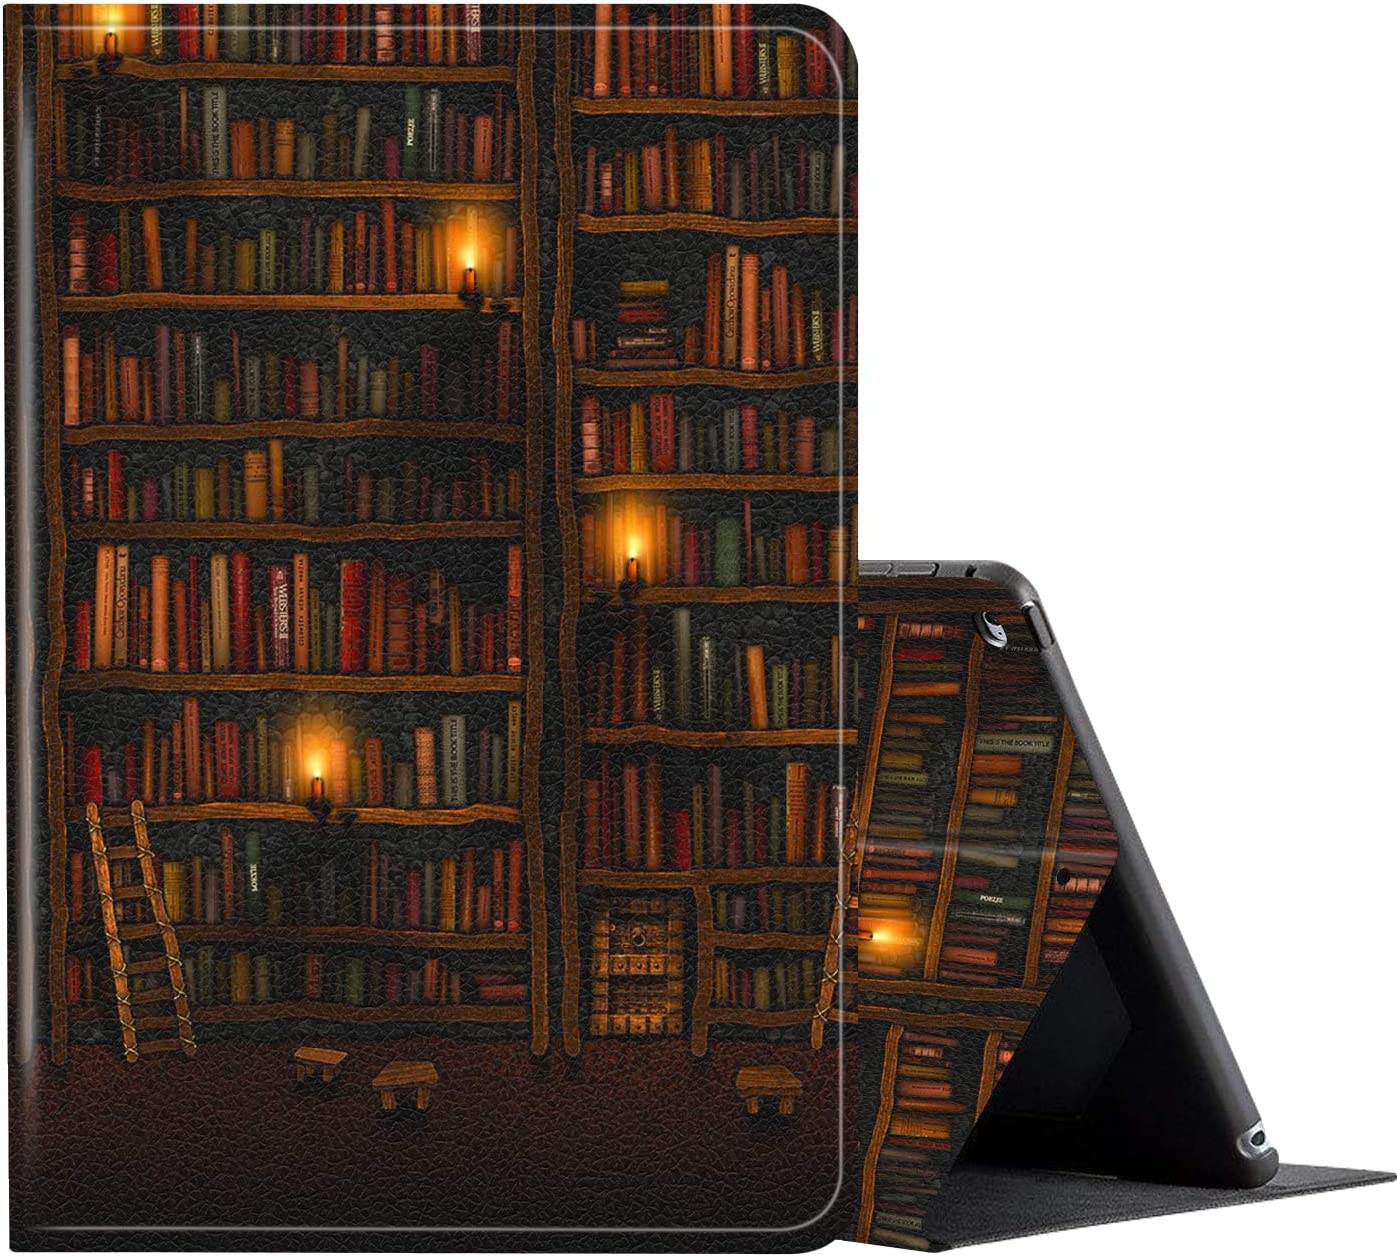 iPad 10.2 Case (2020/2019) 8th/7th Generation ipad Case,Amook Adjustable Non-Slip Folio Stand with Auto Wake/Sleep Smart Cover for New Apple iPad 8/7 Gen 10.2 inch -Bookshelf